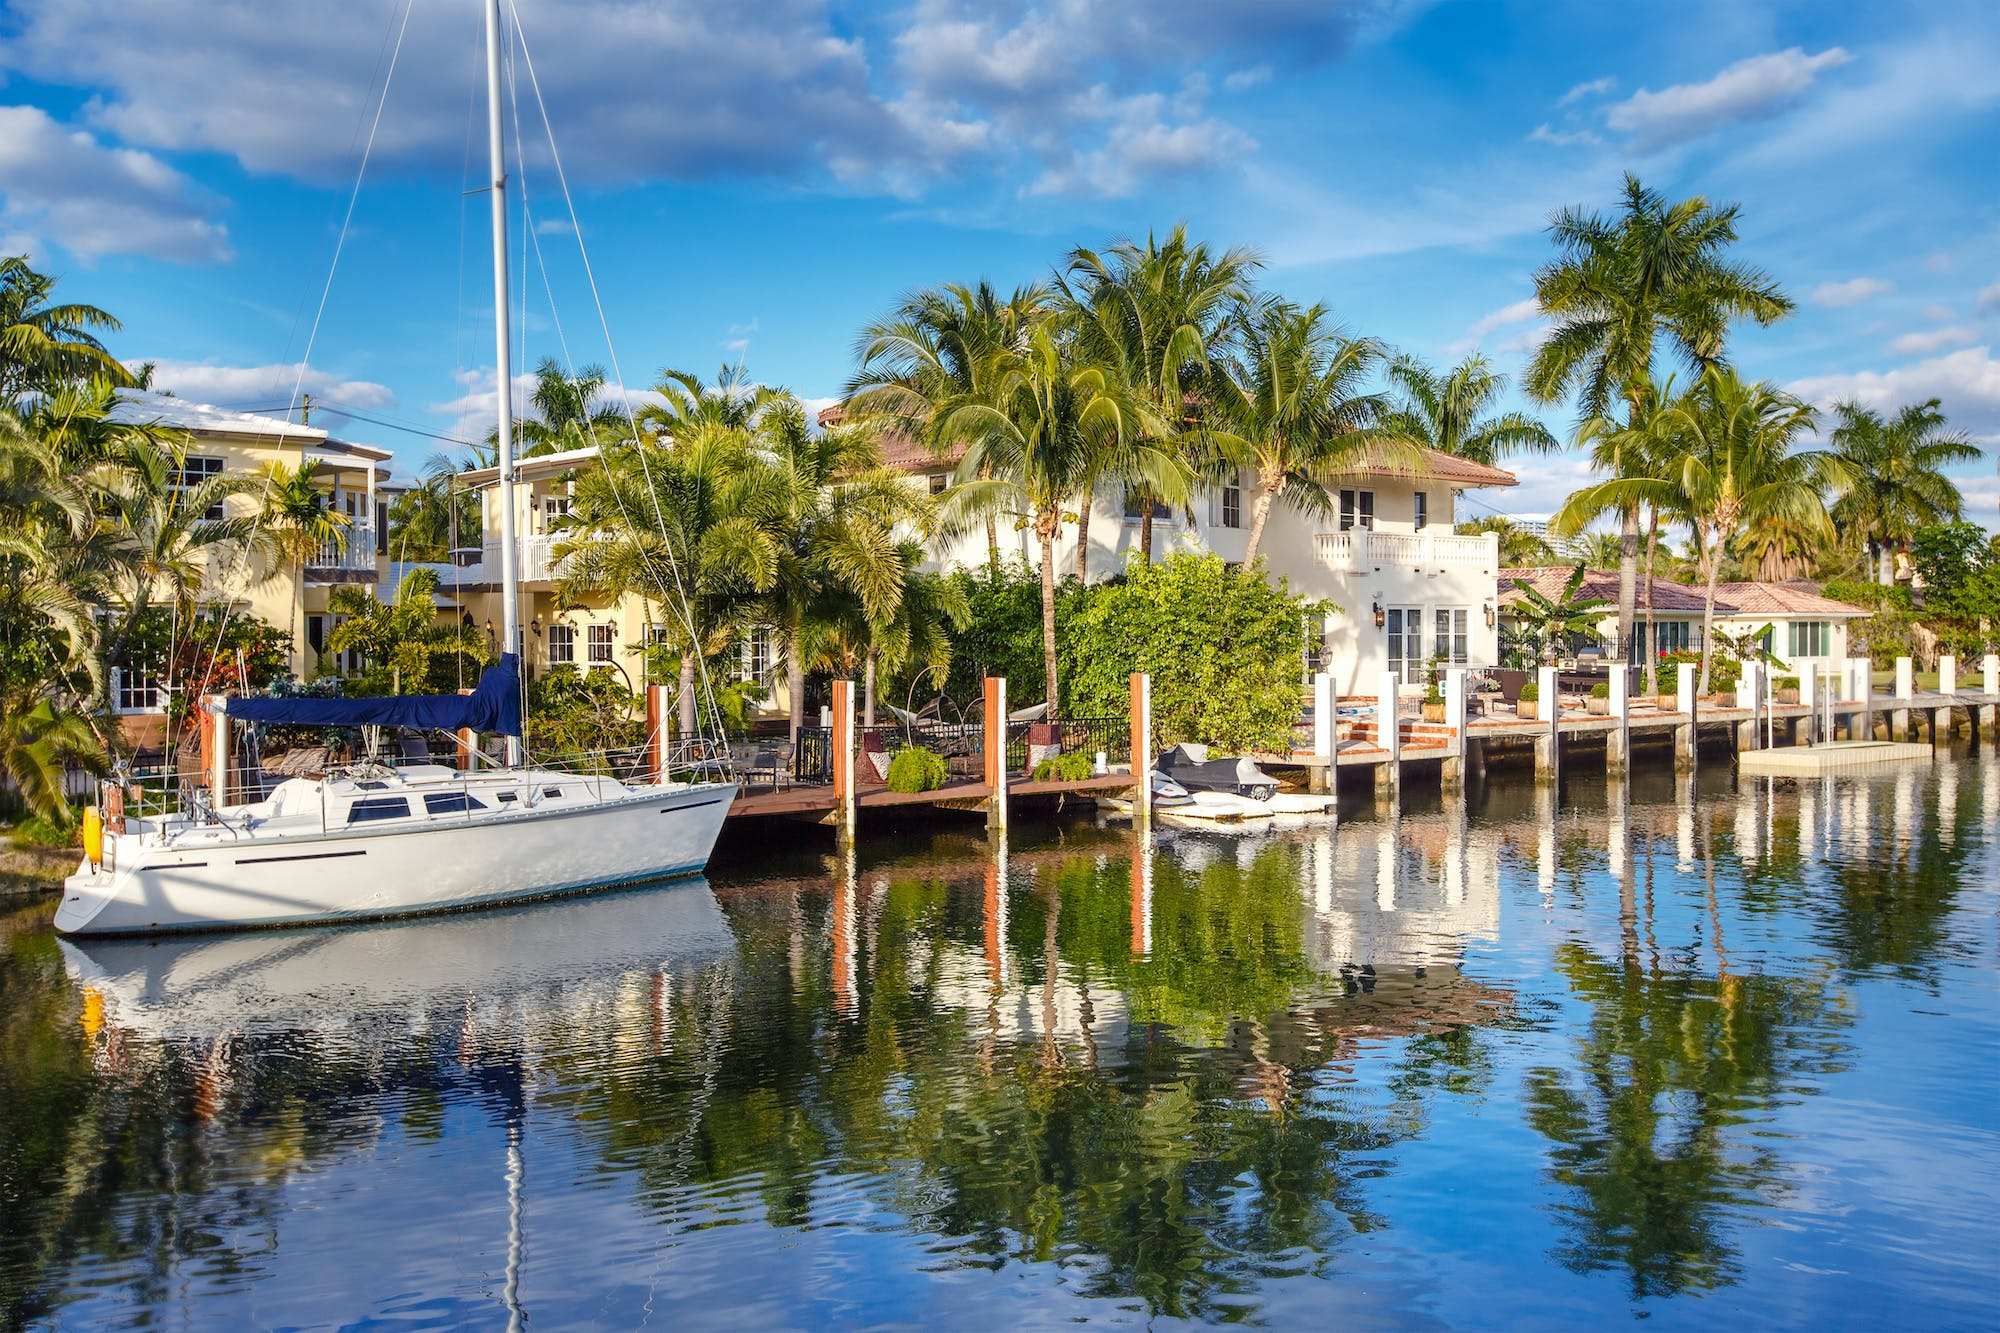 A view of the bay in Fort Lauderdale FL